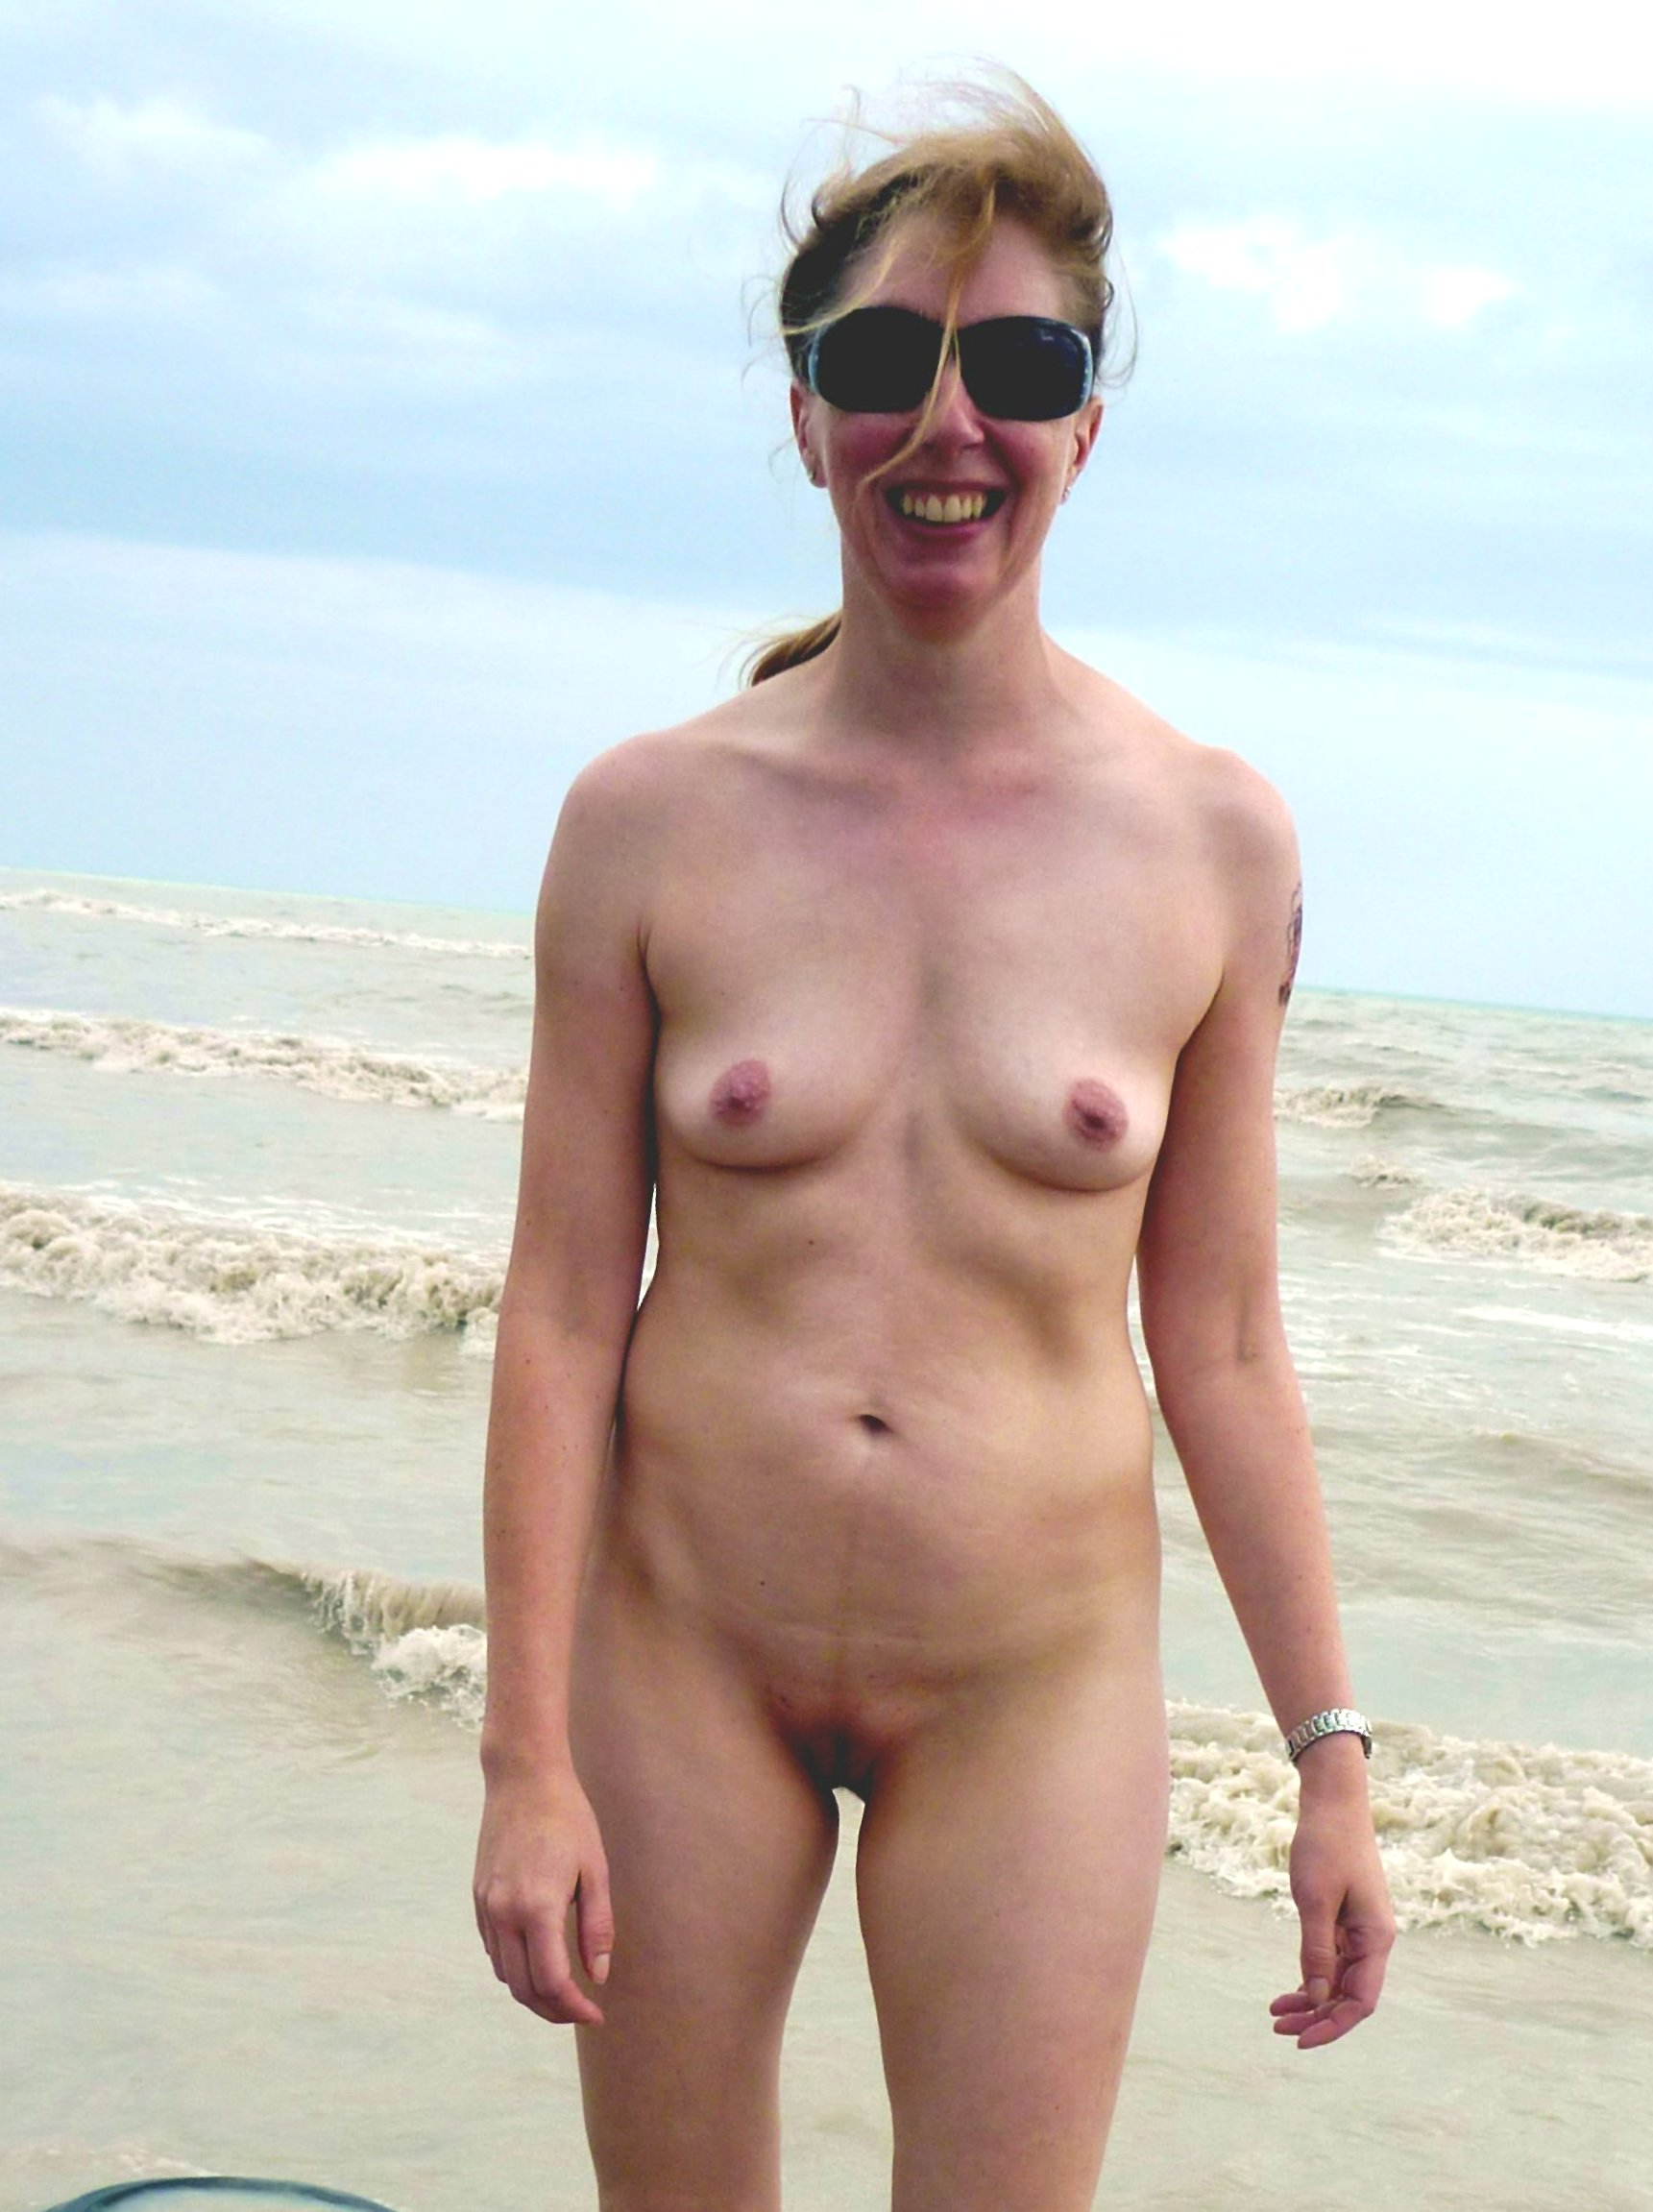 Photos of standing nude women